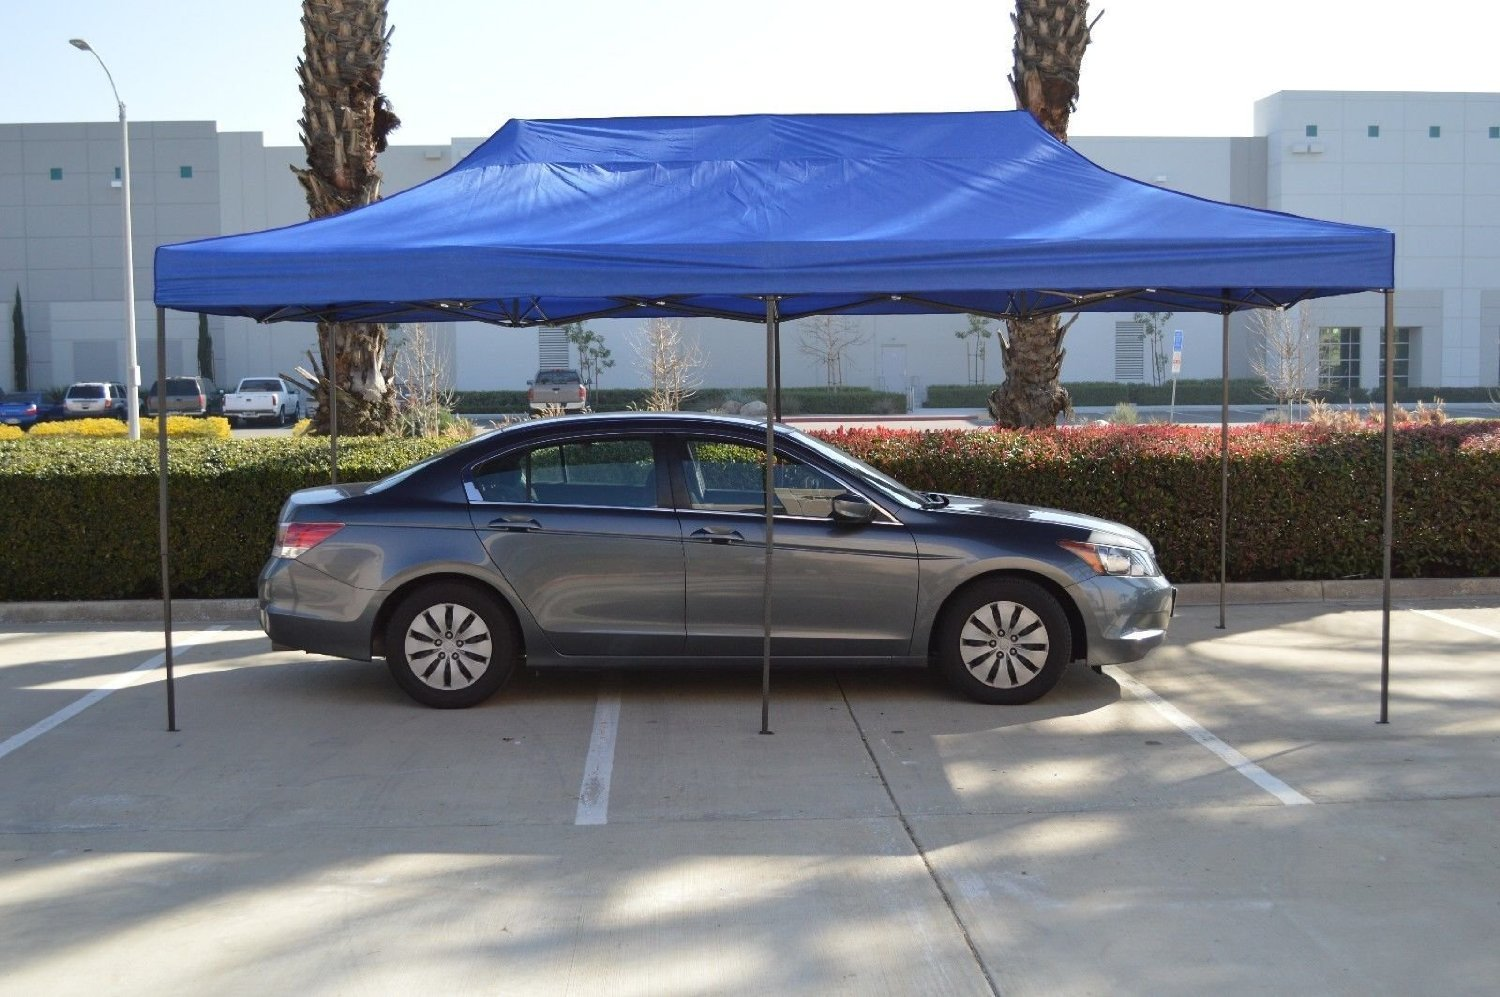 American Phoenix Canopy Tent 10x20 foot Blue Party Tent Gazebo Canopy Commercial Fair Car Shelter